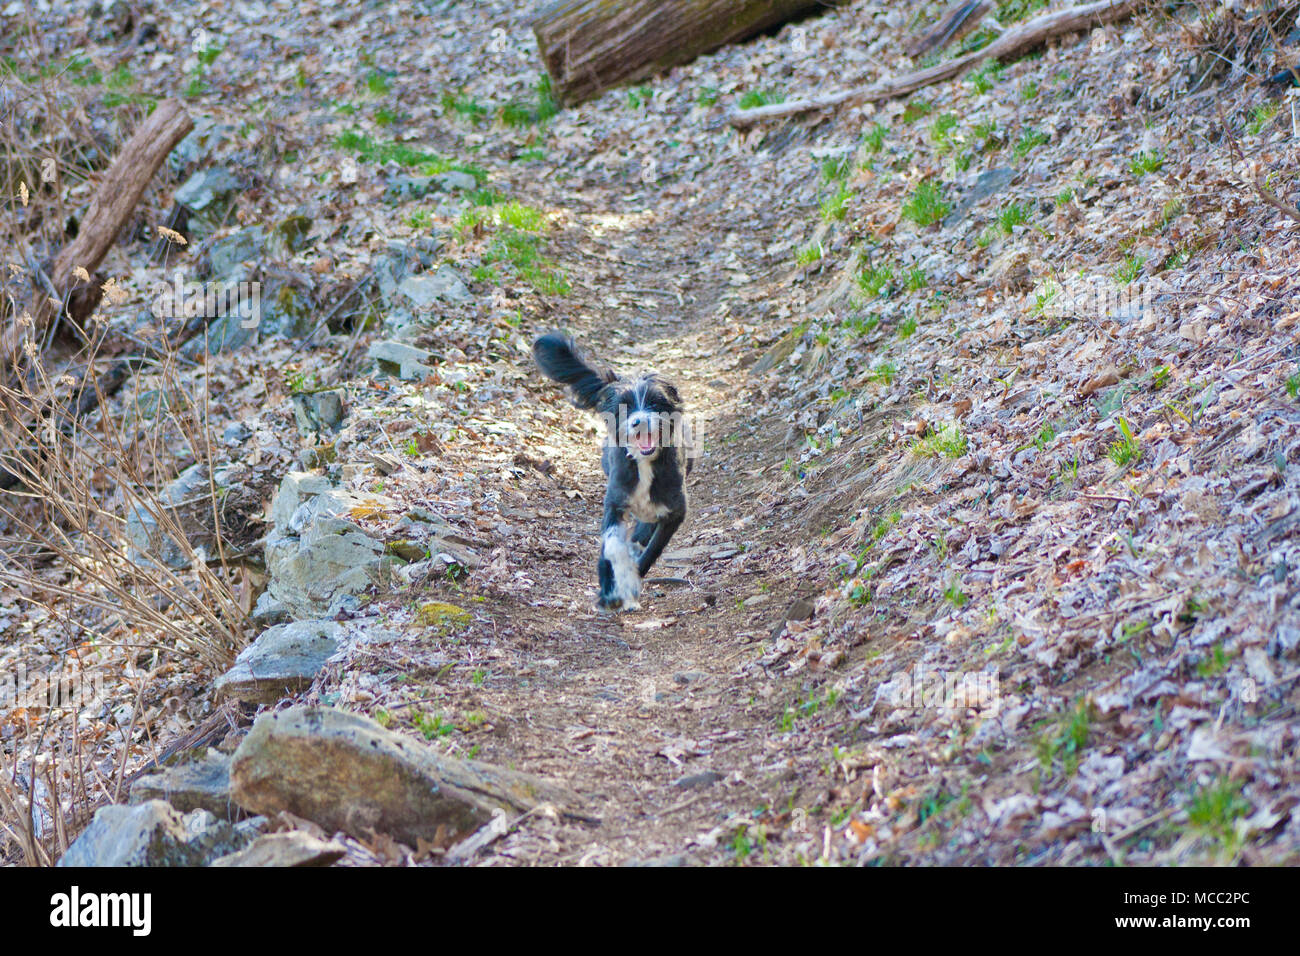 Dog trail running in the Pisgah Forest - Stock Image